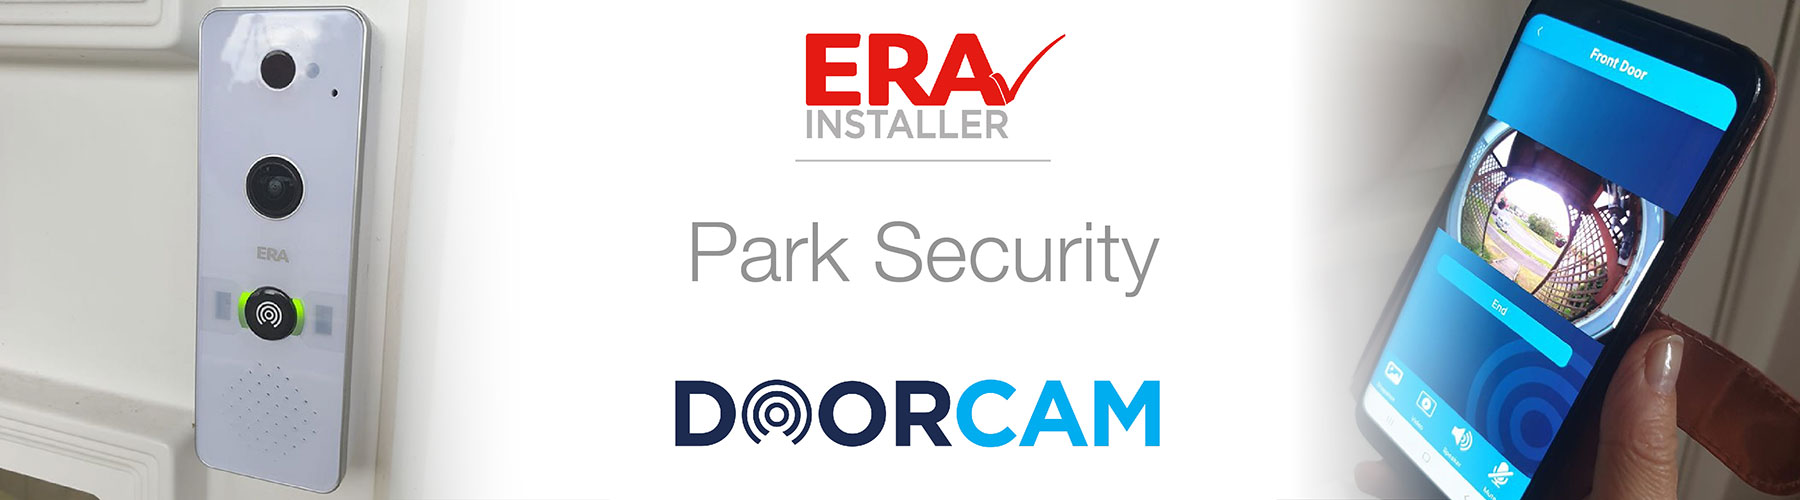 ERA Installer Testimonial Park Security